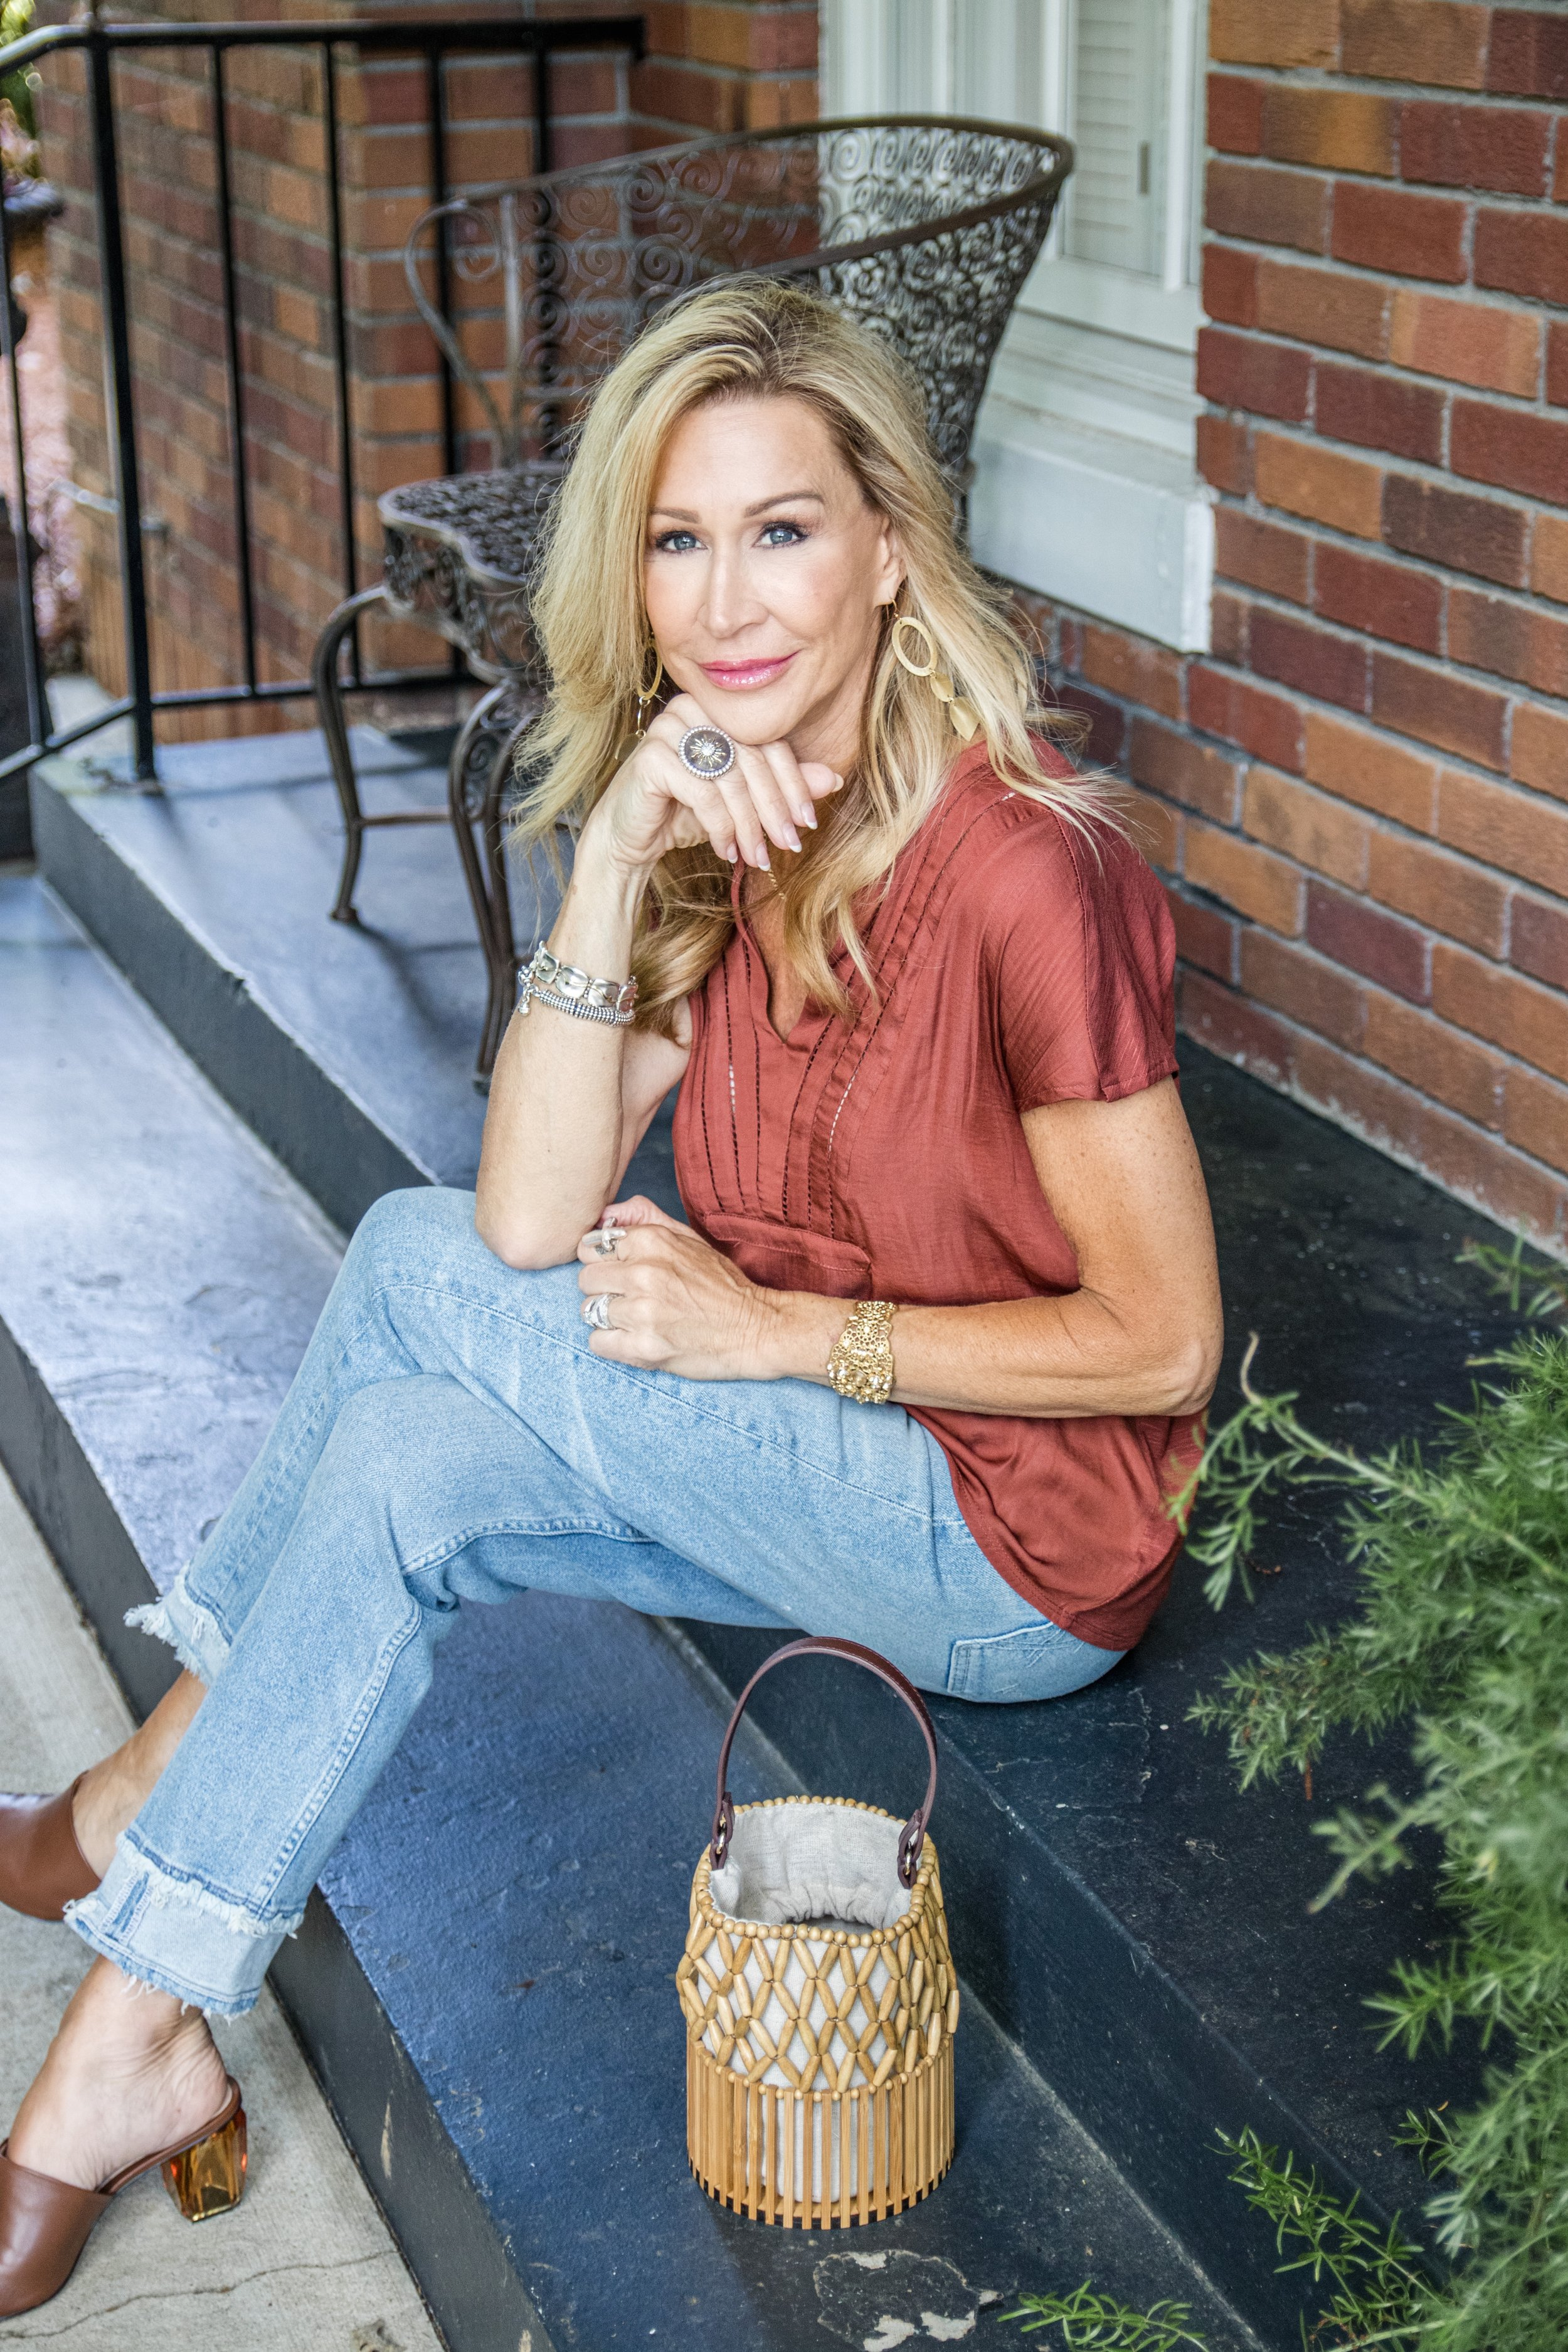 Casual Spring Outfit - Loft top, McGuire jeans, Zara Shoes and bag